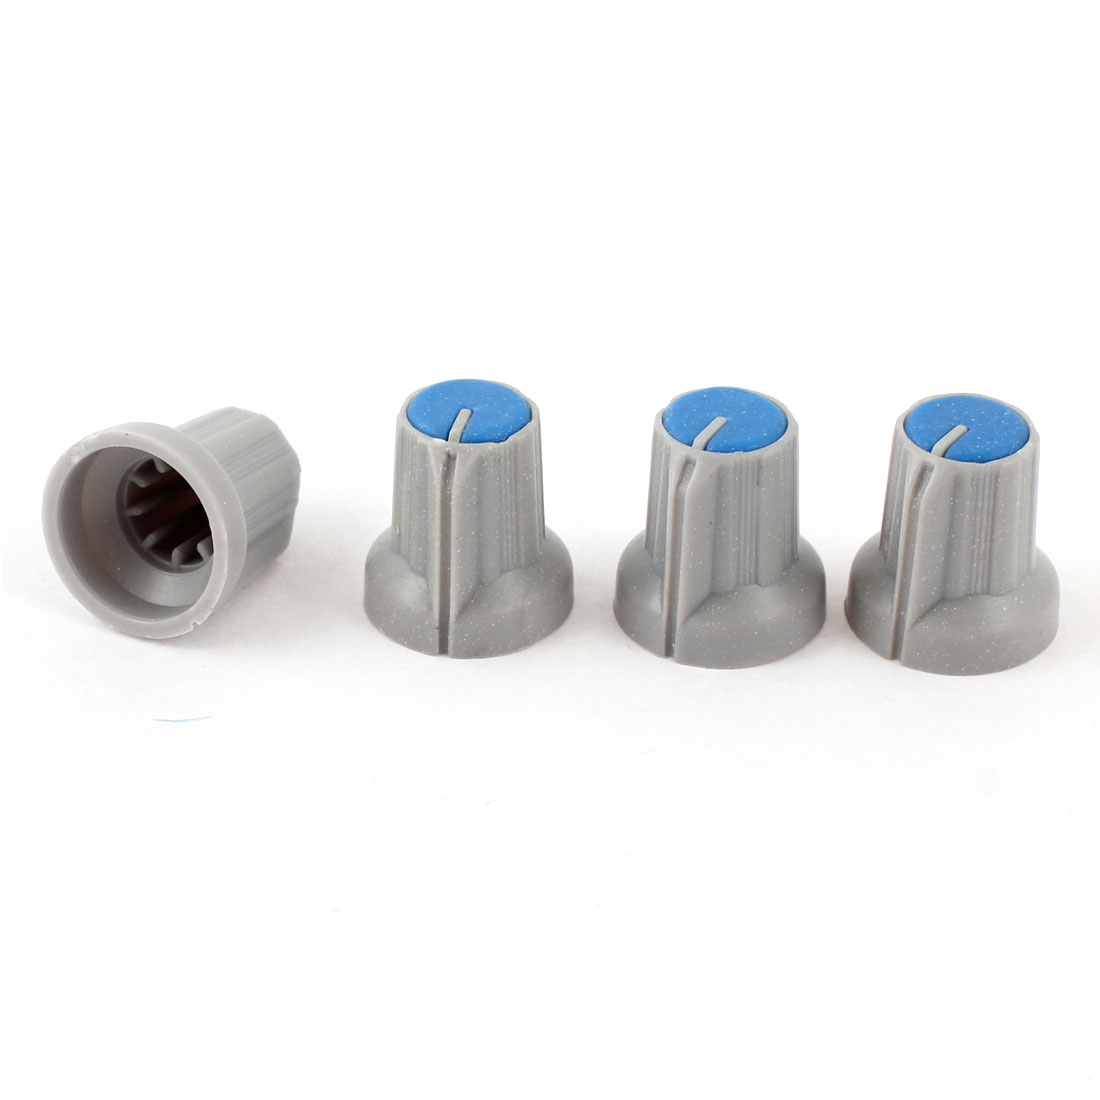 4pcs 5.5mm Knurled Shaft Taper Volume Knob Cap Gray Blue for Potentiometer Pot